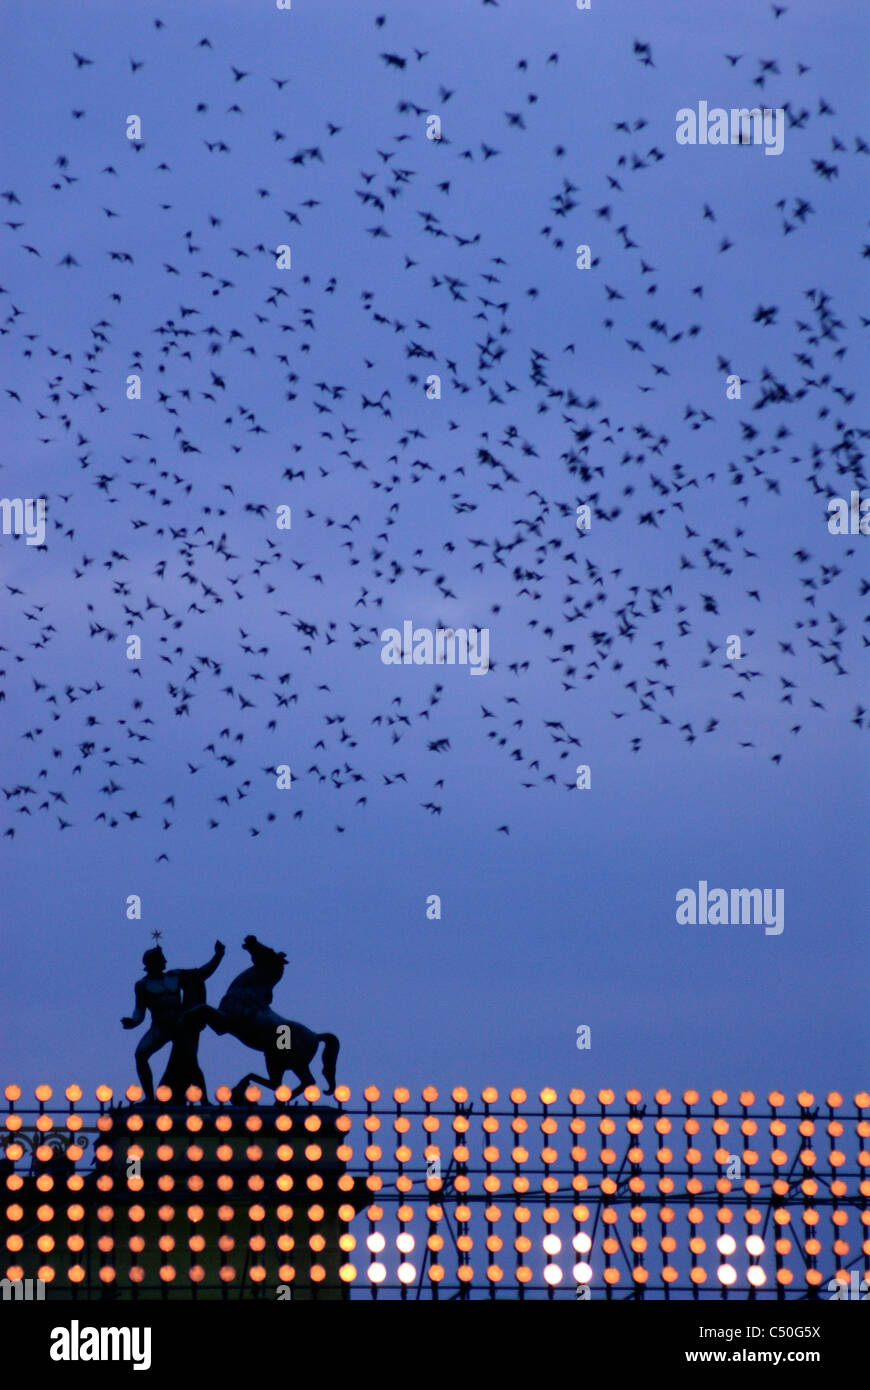 Berlin. Germany. Murmuration of Starlings above the Altes Museum, Lustgarten. - Stock Image